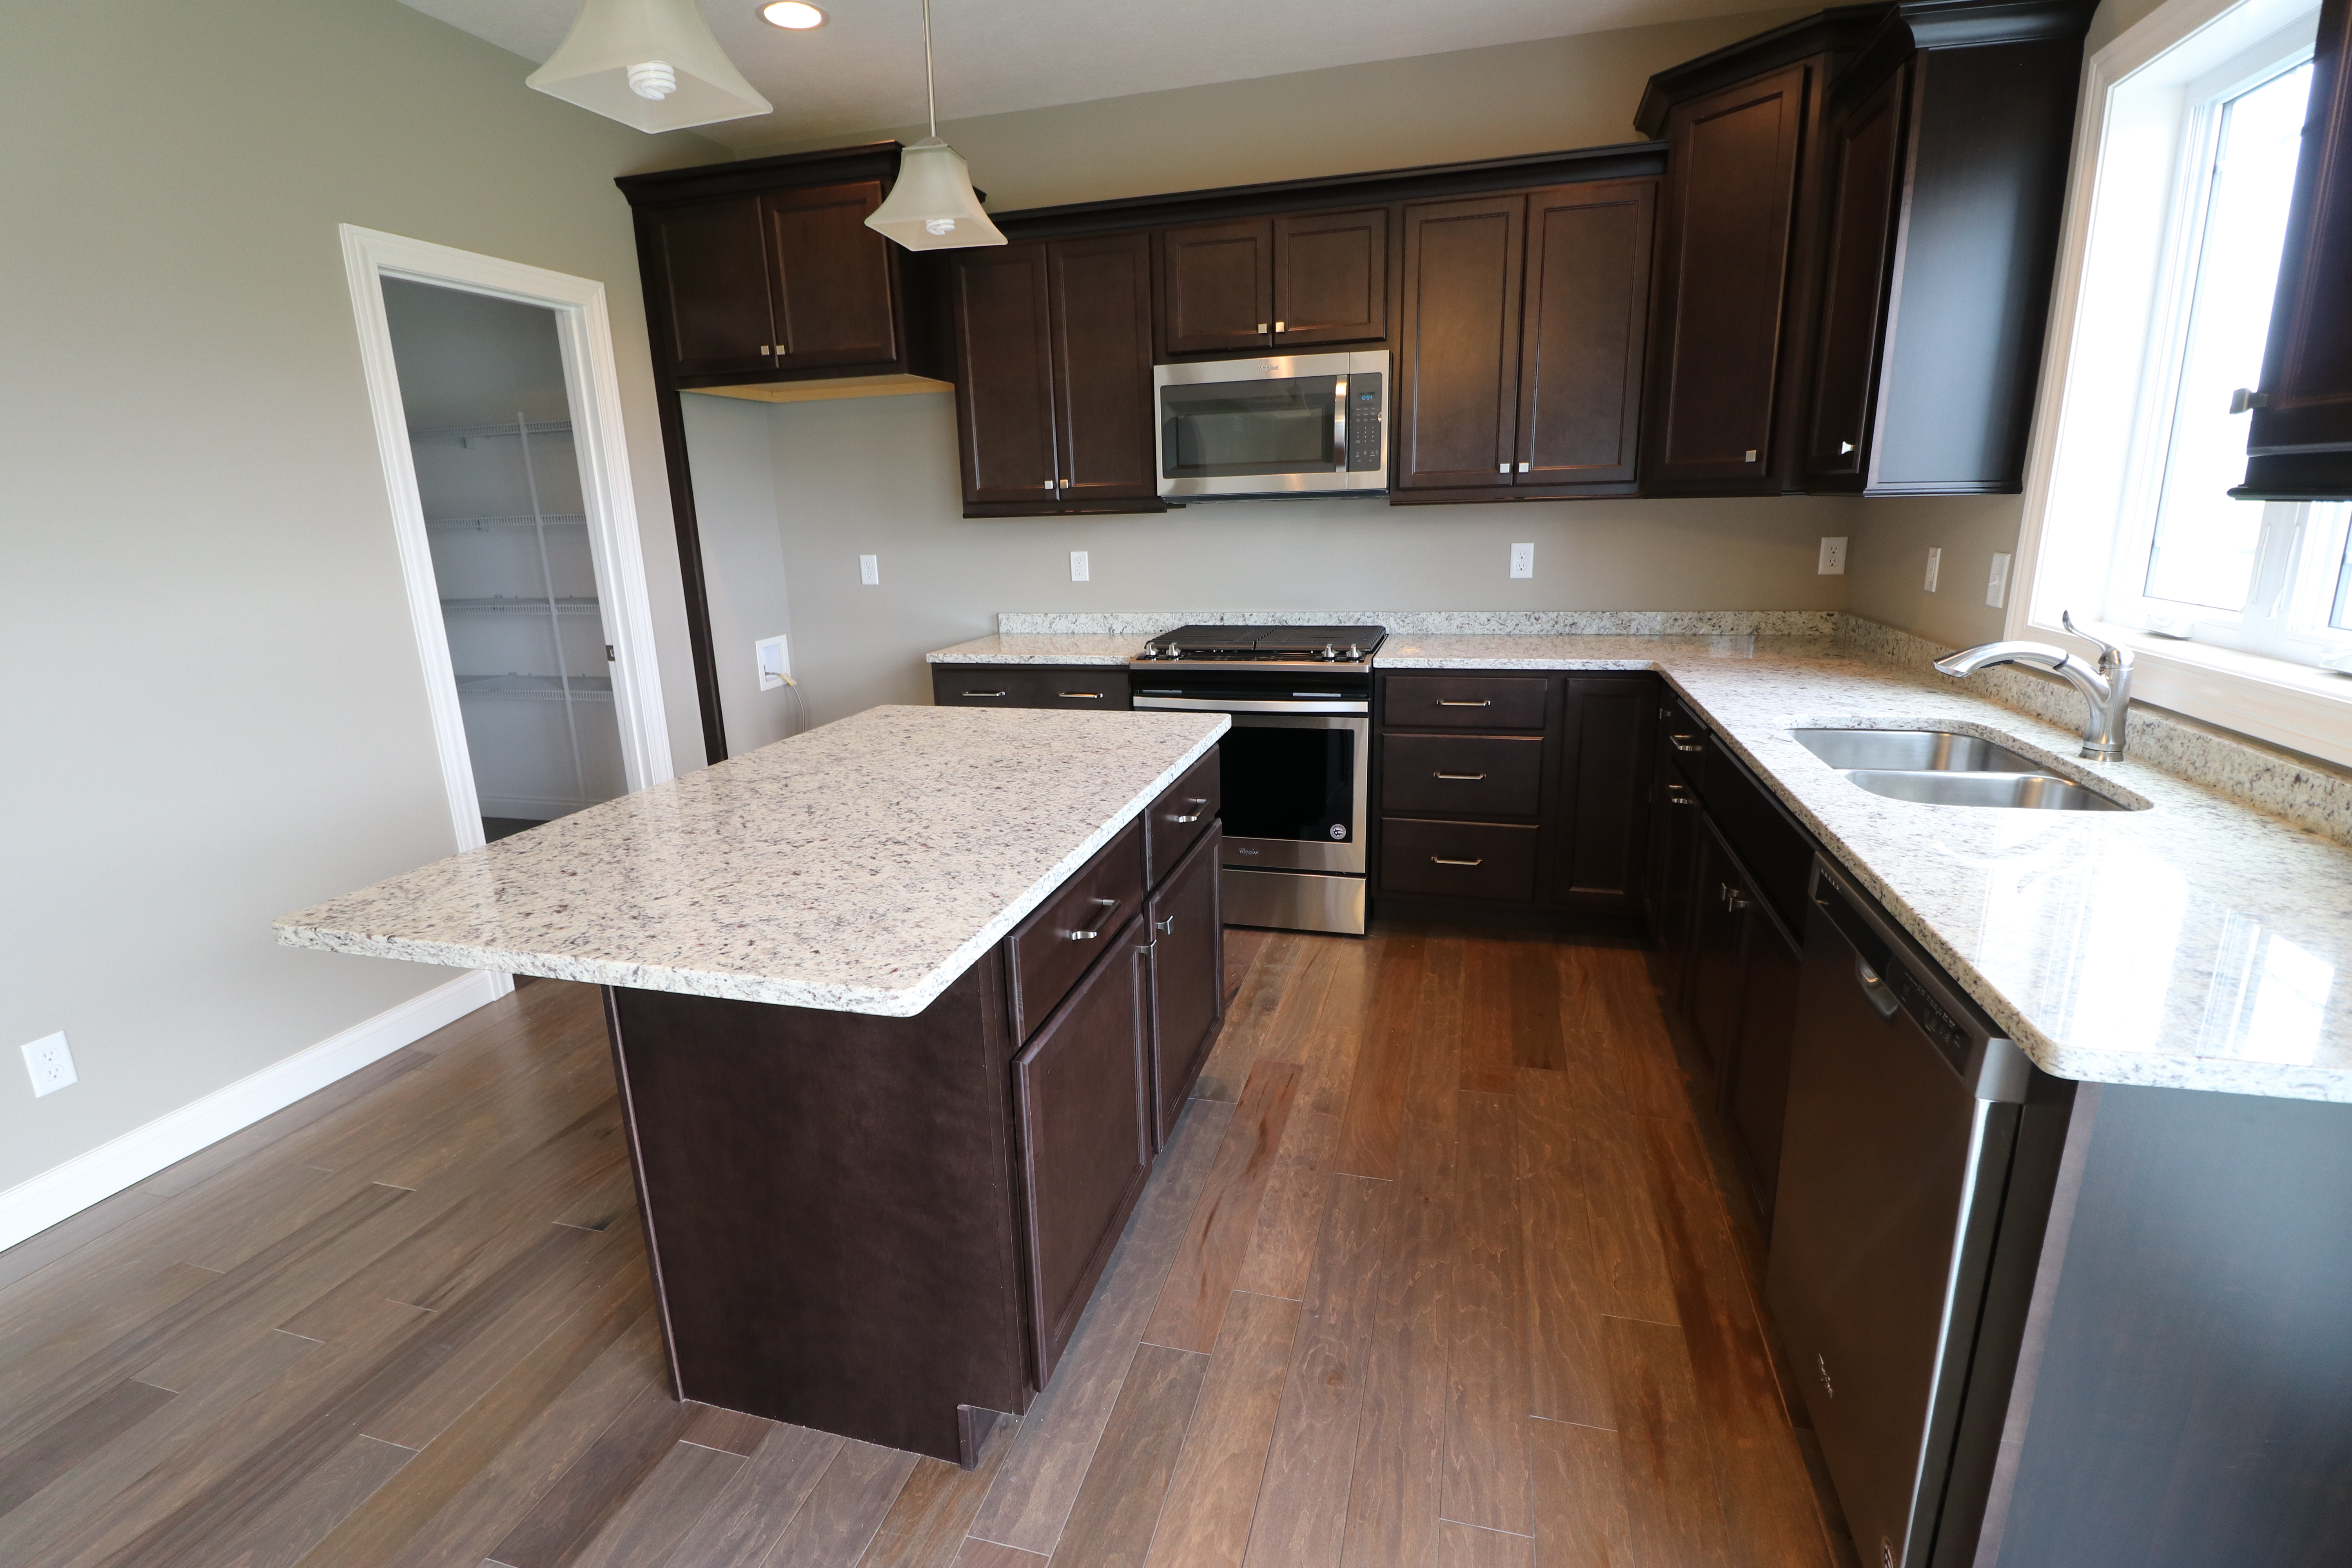 House for sale in the Dunlap peoria area kitchen view